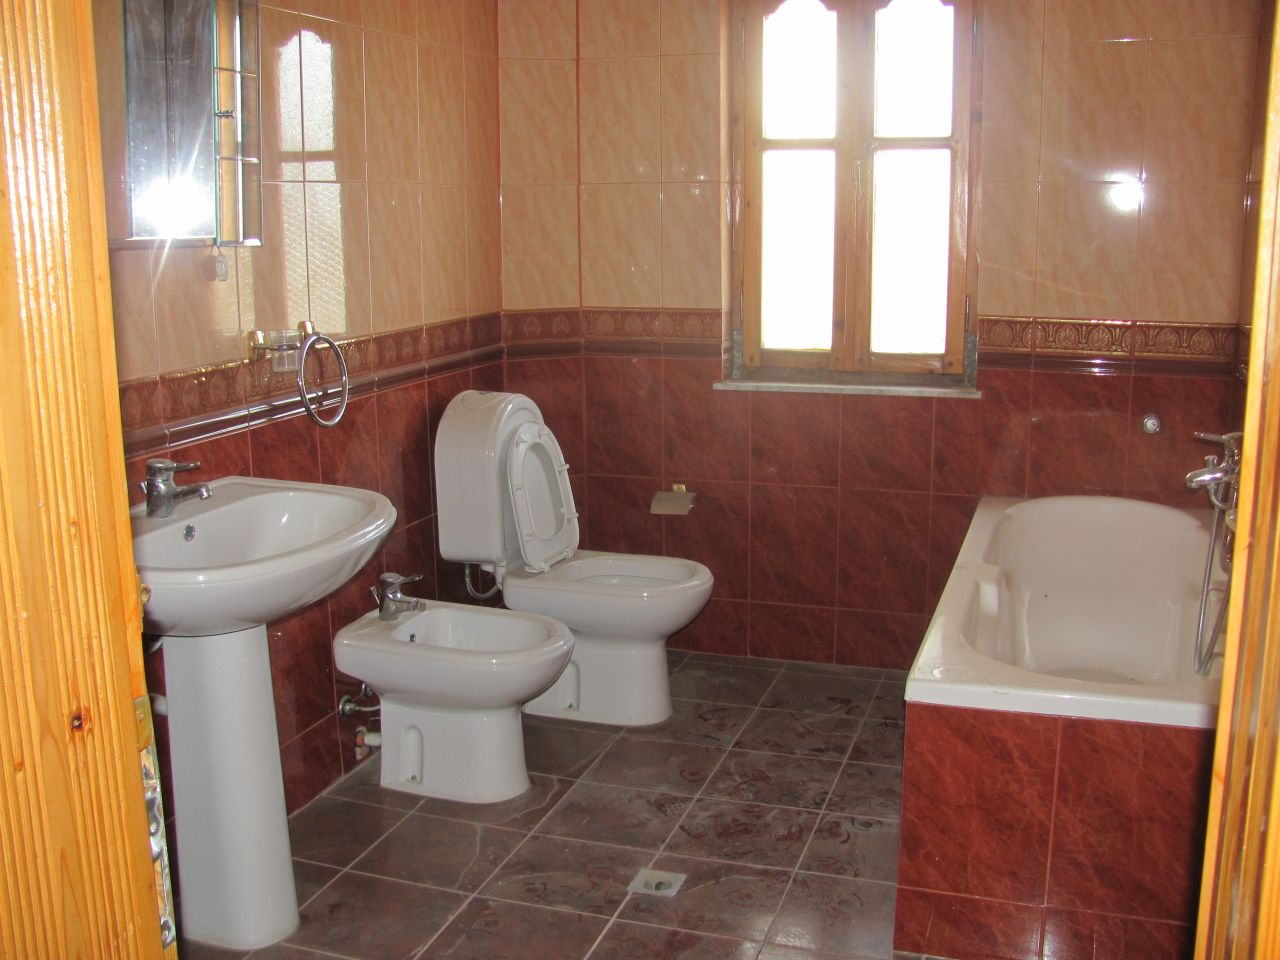 Villa for Rent in Tirana, Albania offered by Albania Property Group